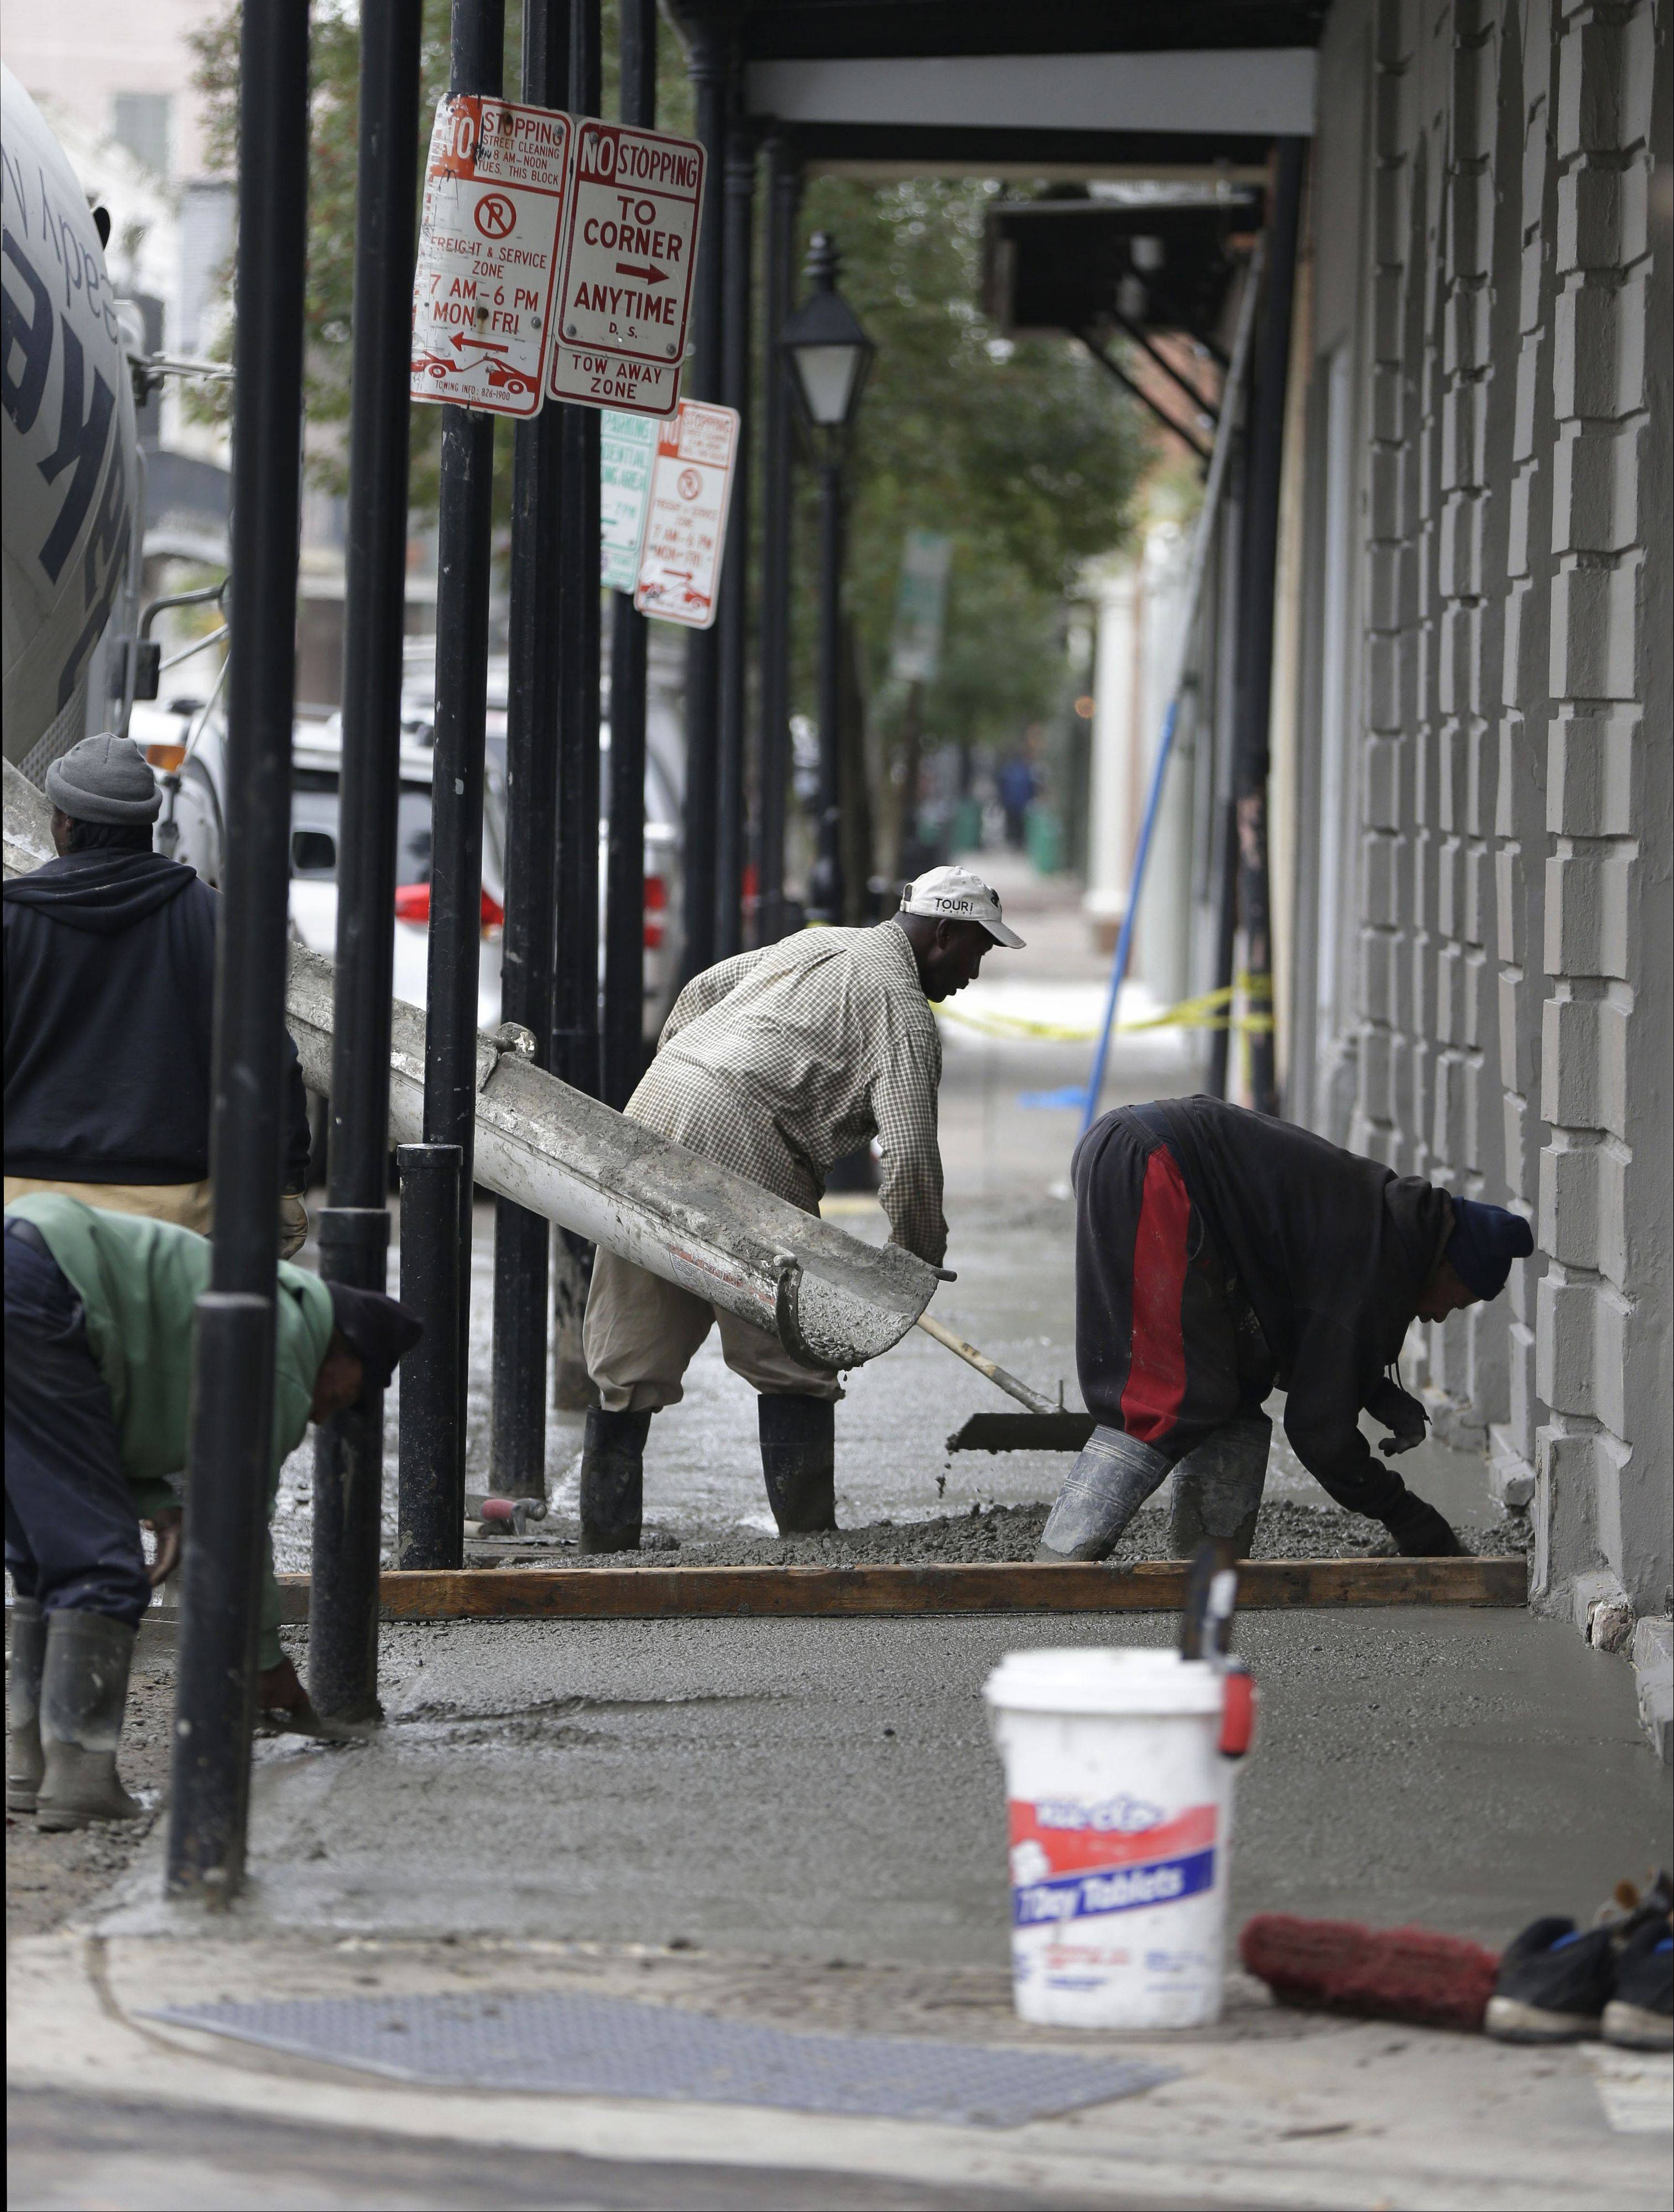 Associated PressWorkers pour a new sidewalk Tuesday on Royal Street in the French Quarter section of in New Orleans. With the Super Bowl in New Orleans Feb. 3 and Mardi Gras falling just nine days later, the city is gearing up for a massive celebration.